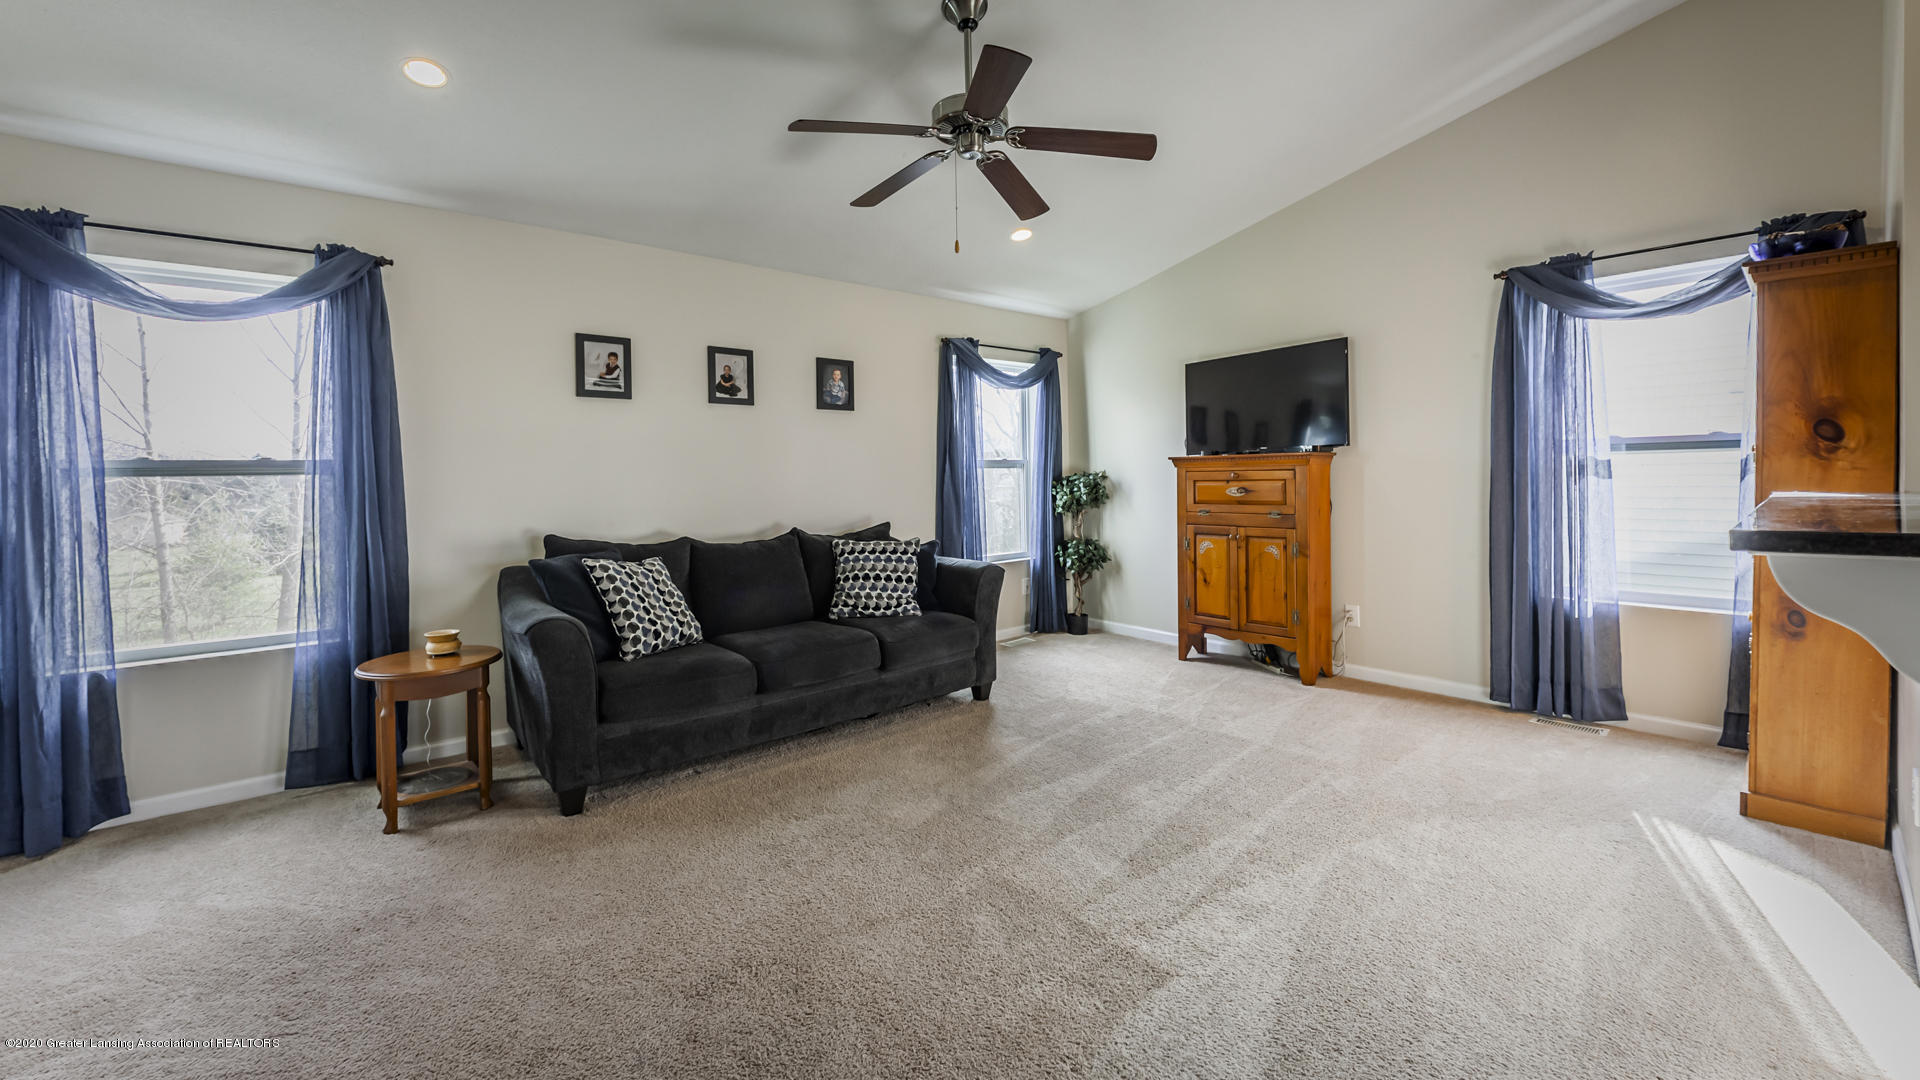 15845 Turnberry St - 15845Turnberry08 - 8